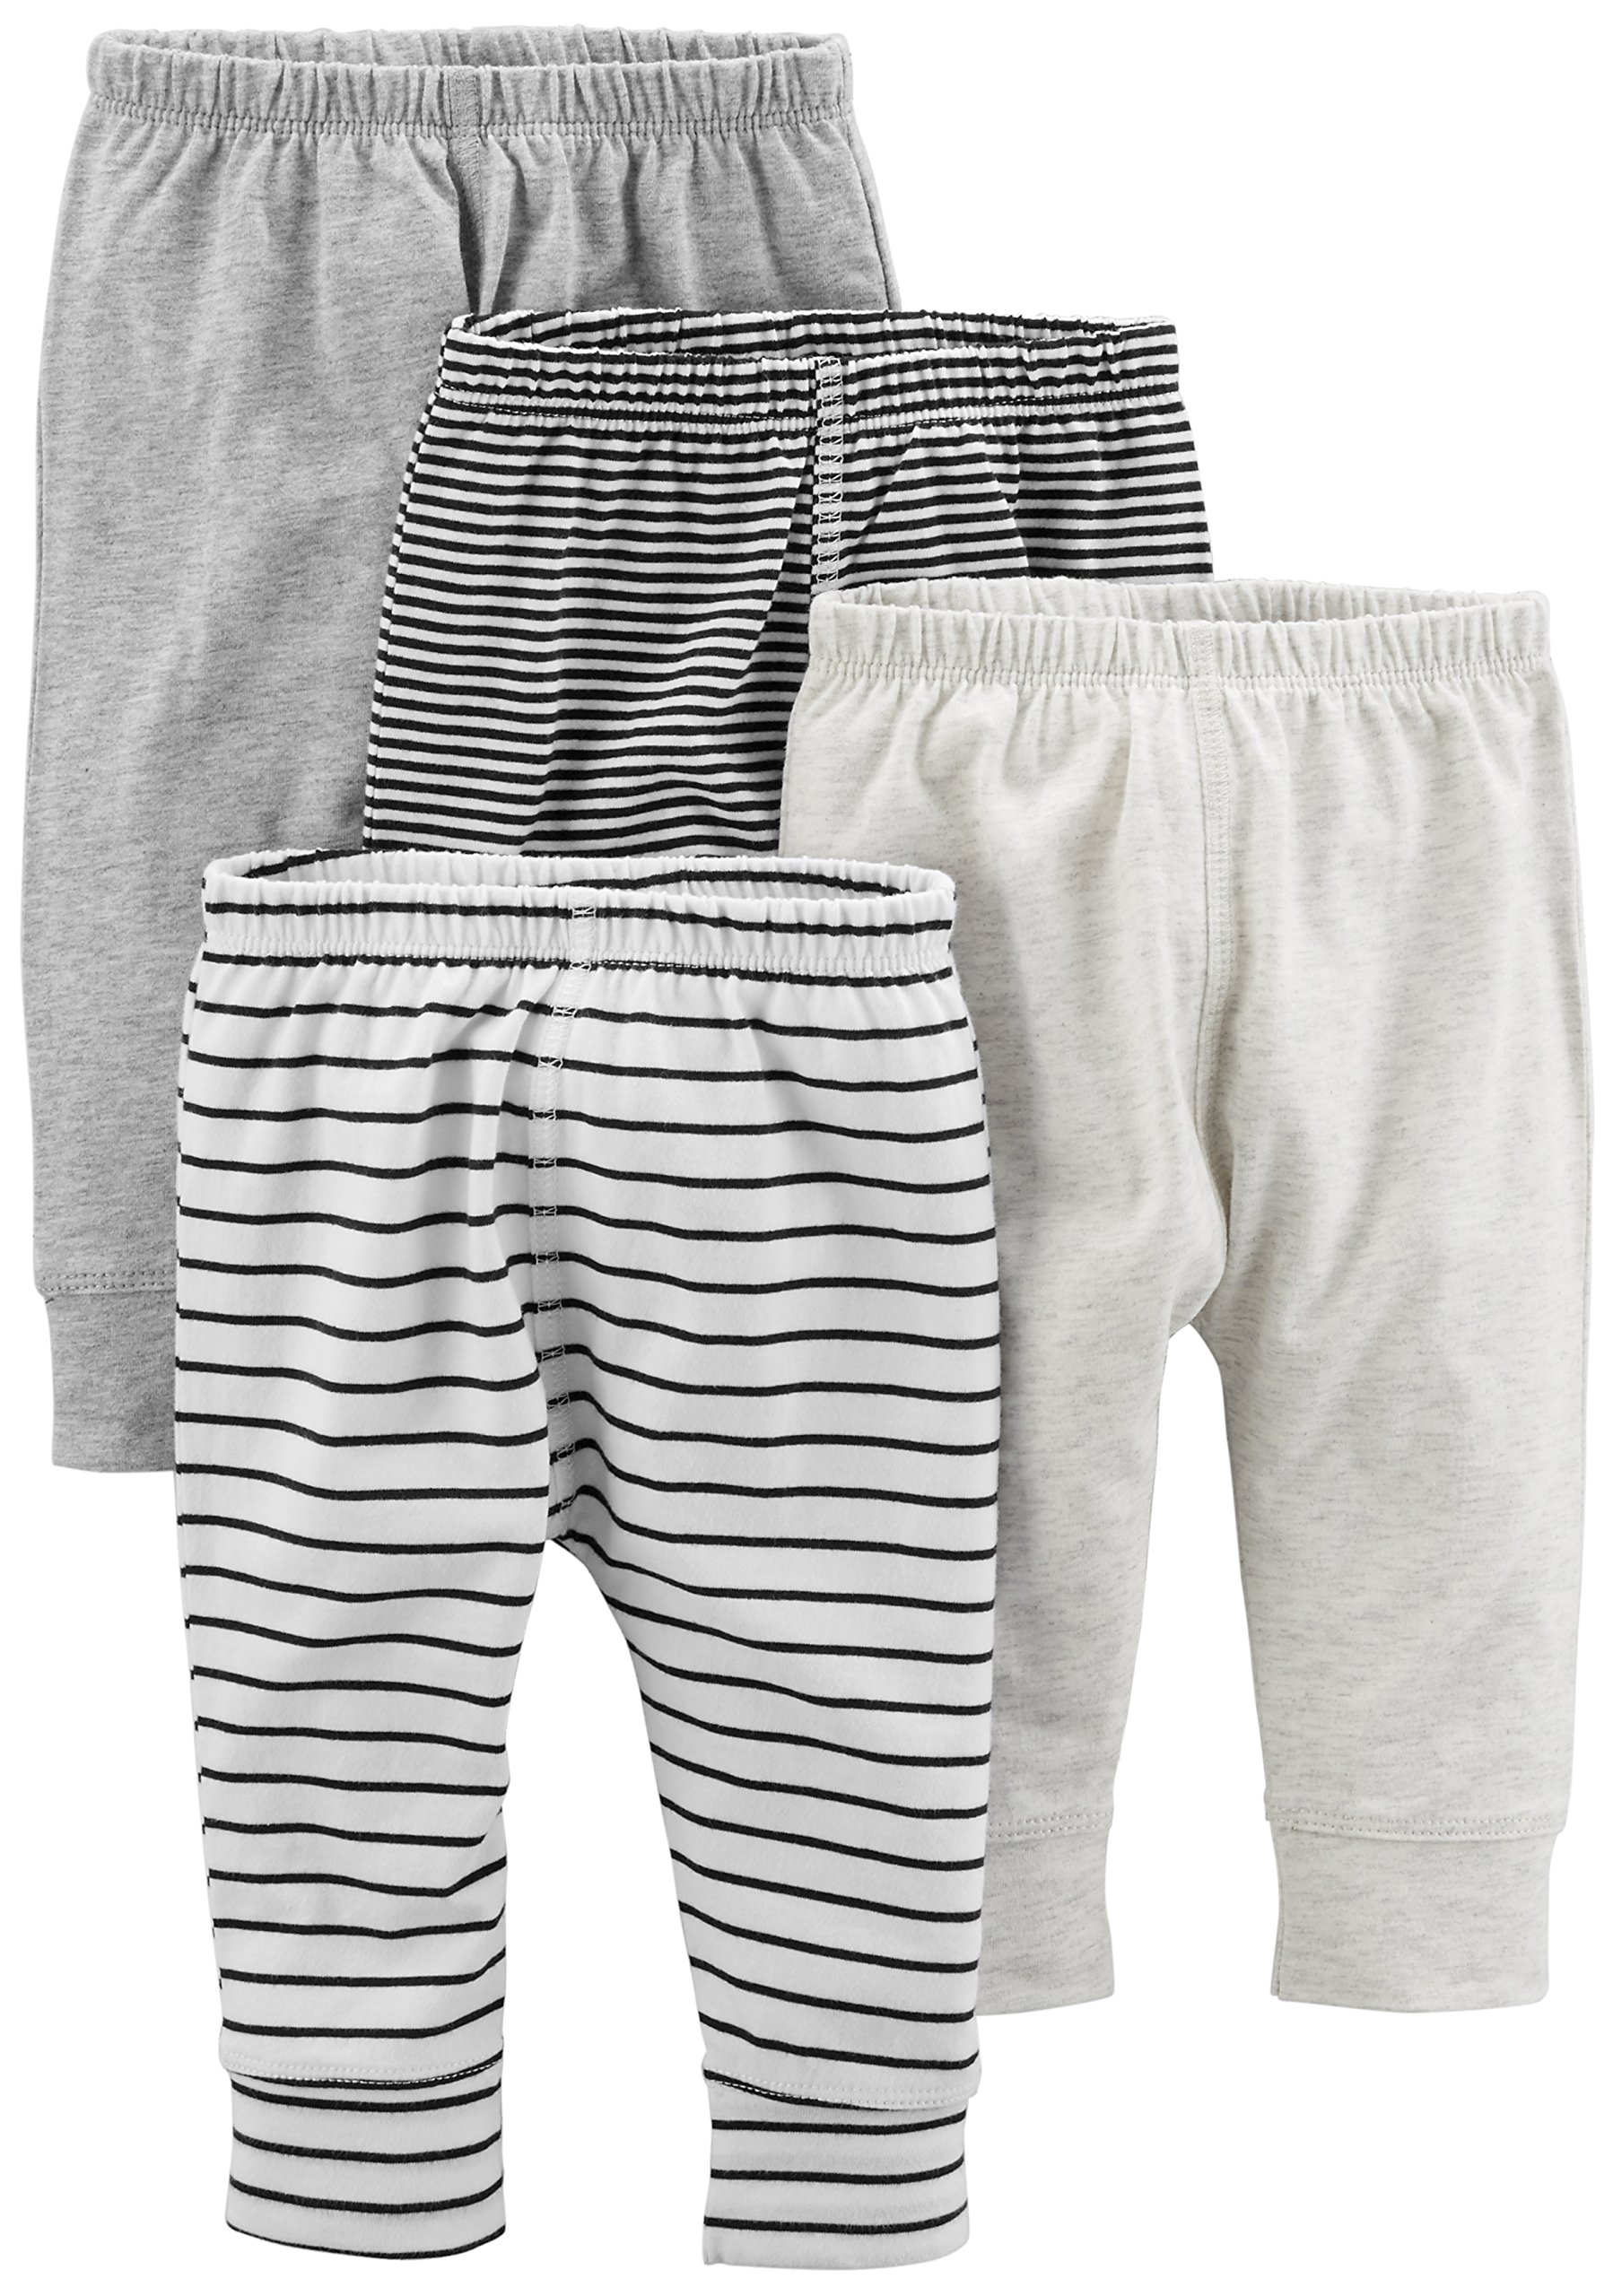 Simple Joys by Carter's Baby paquete de 4 pantalones 1